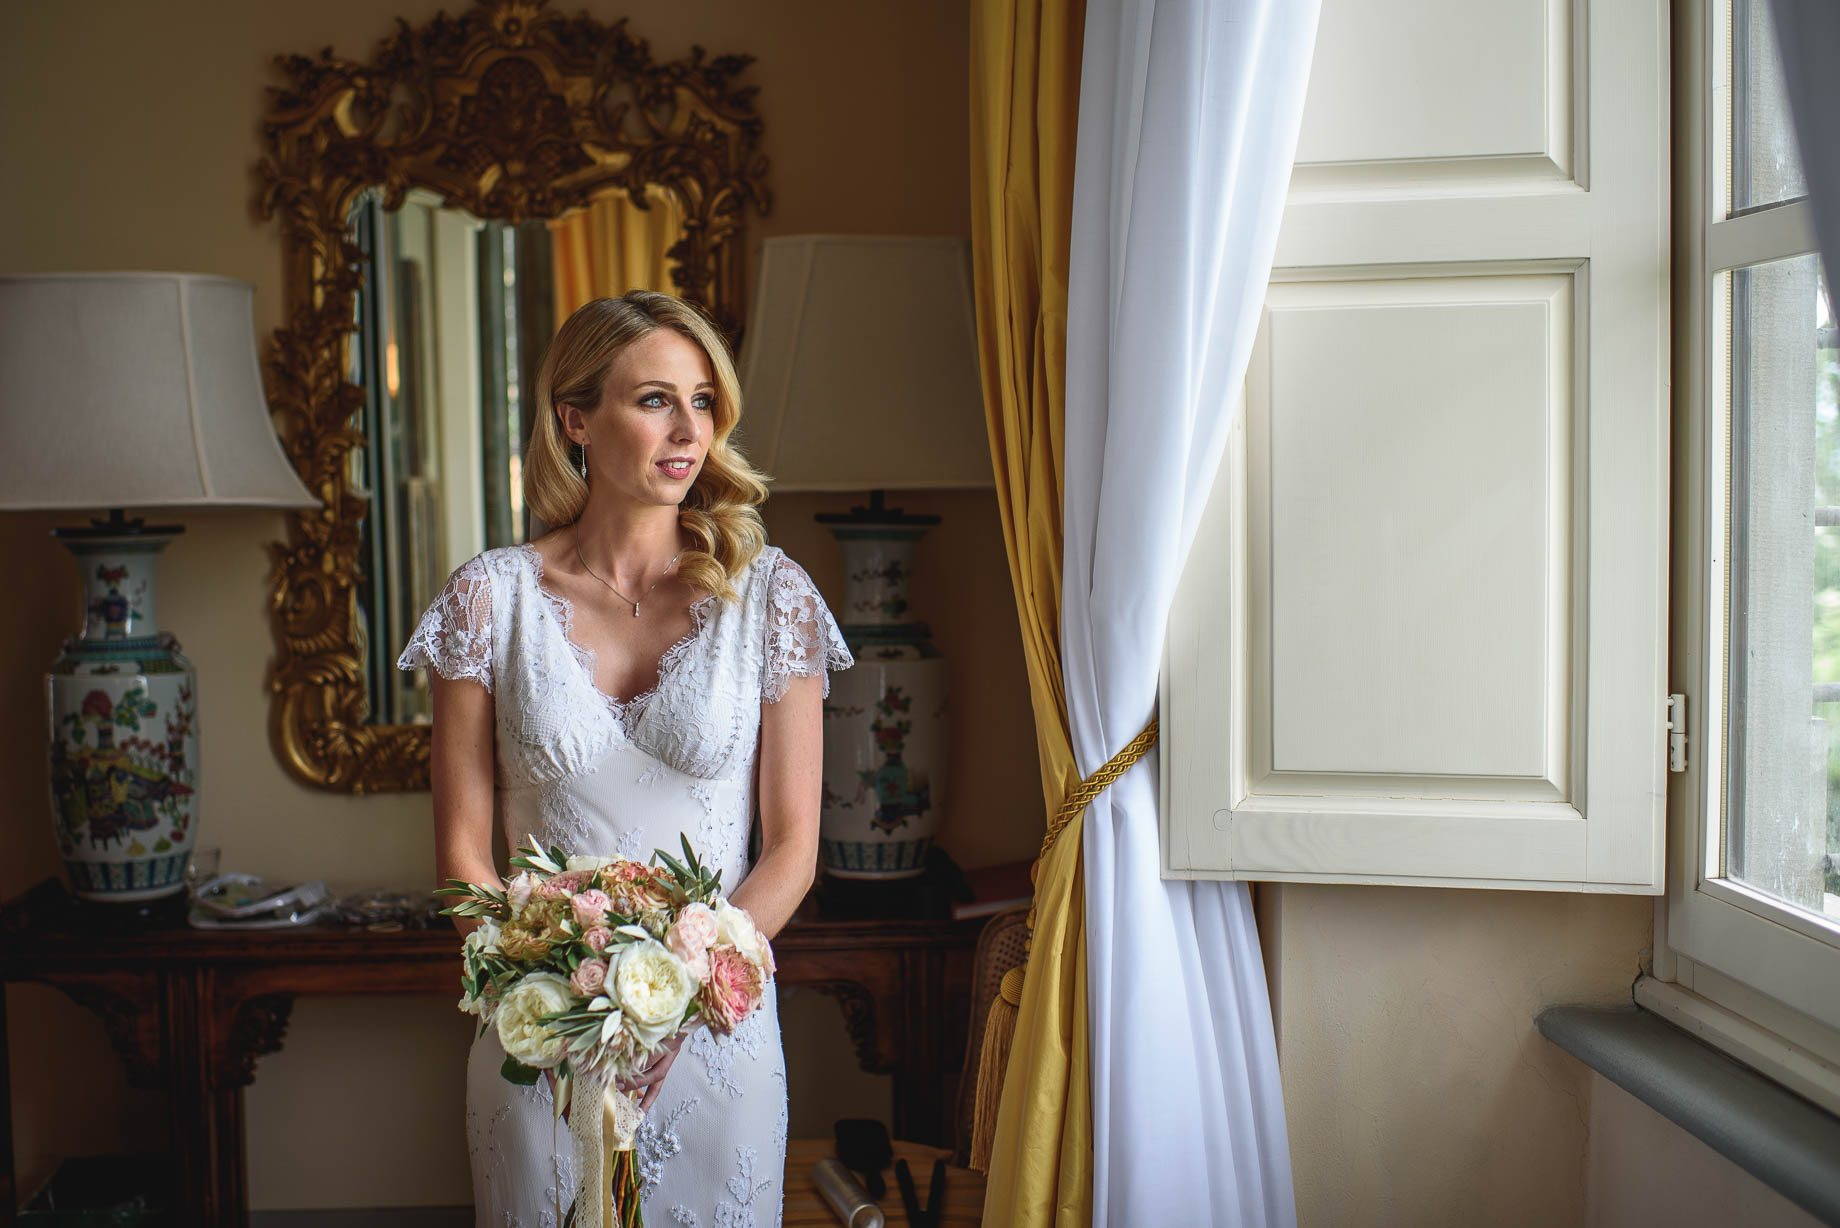 Tuscany wedding photography - Roisin and Moubin - Guy Collier Photography (95 of 251)